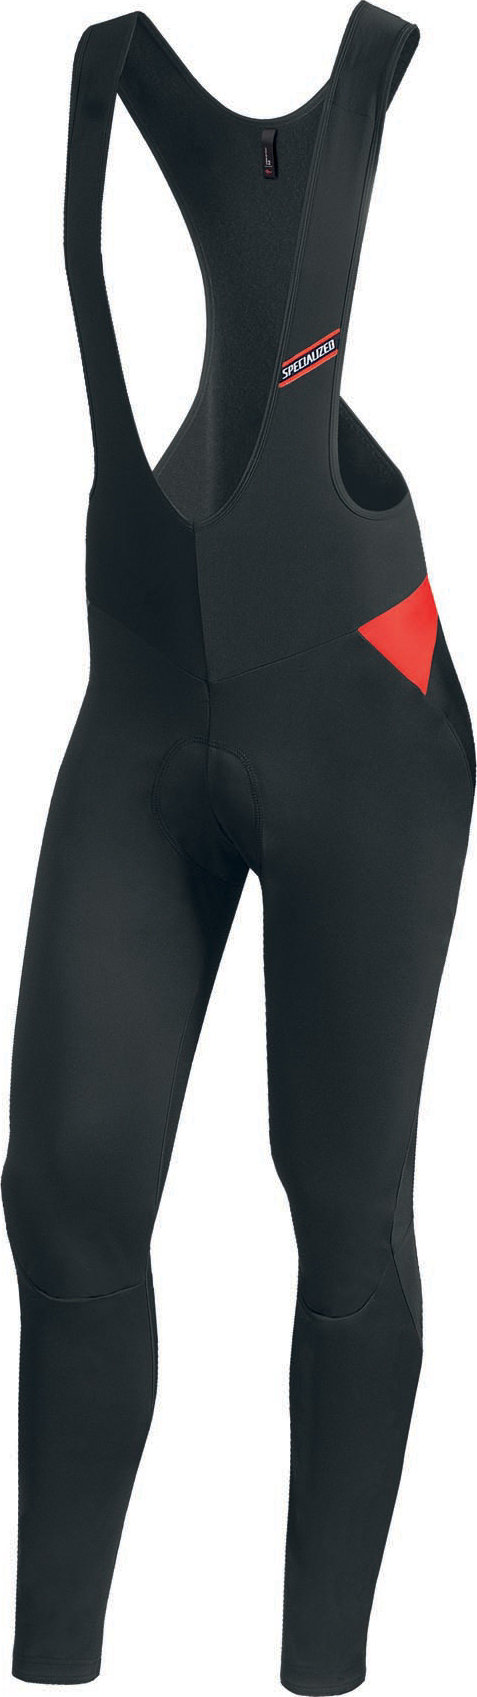 Specialized Element RBX Comp bib tight Black M - Alpha Bikes